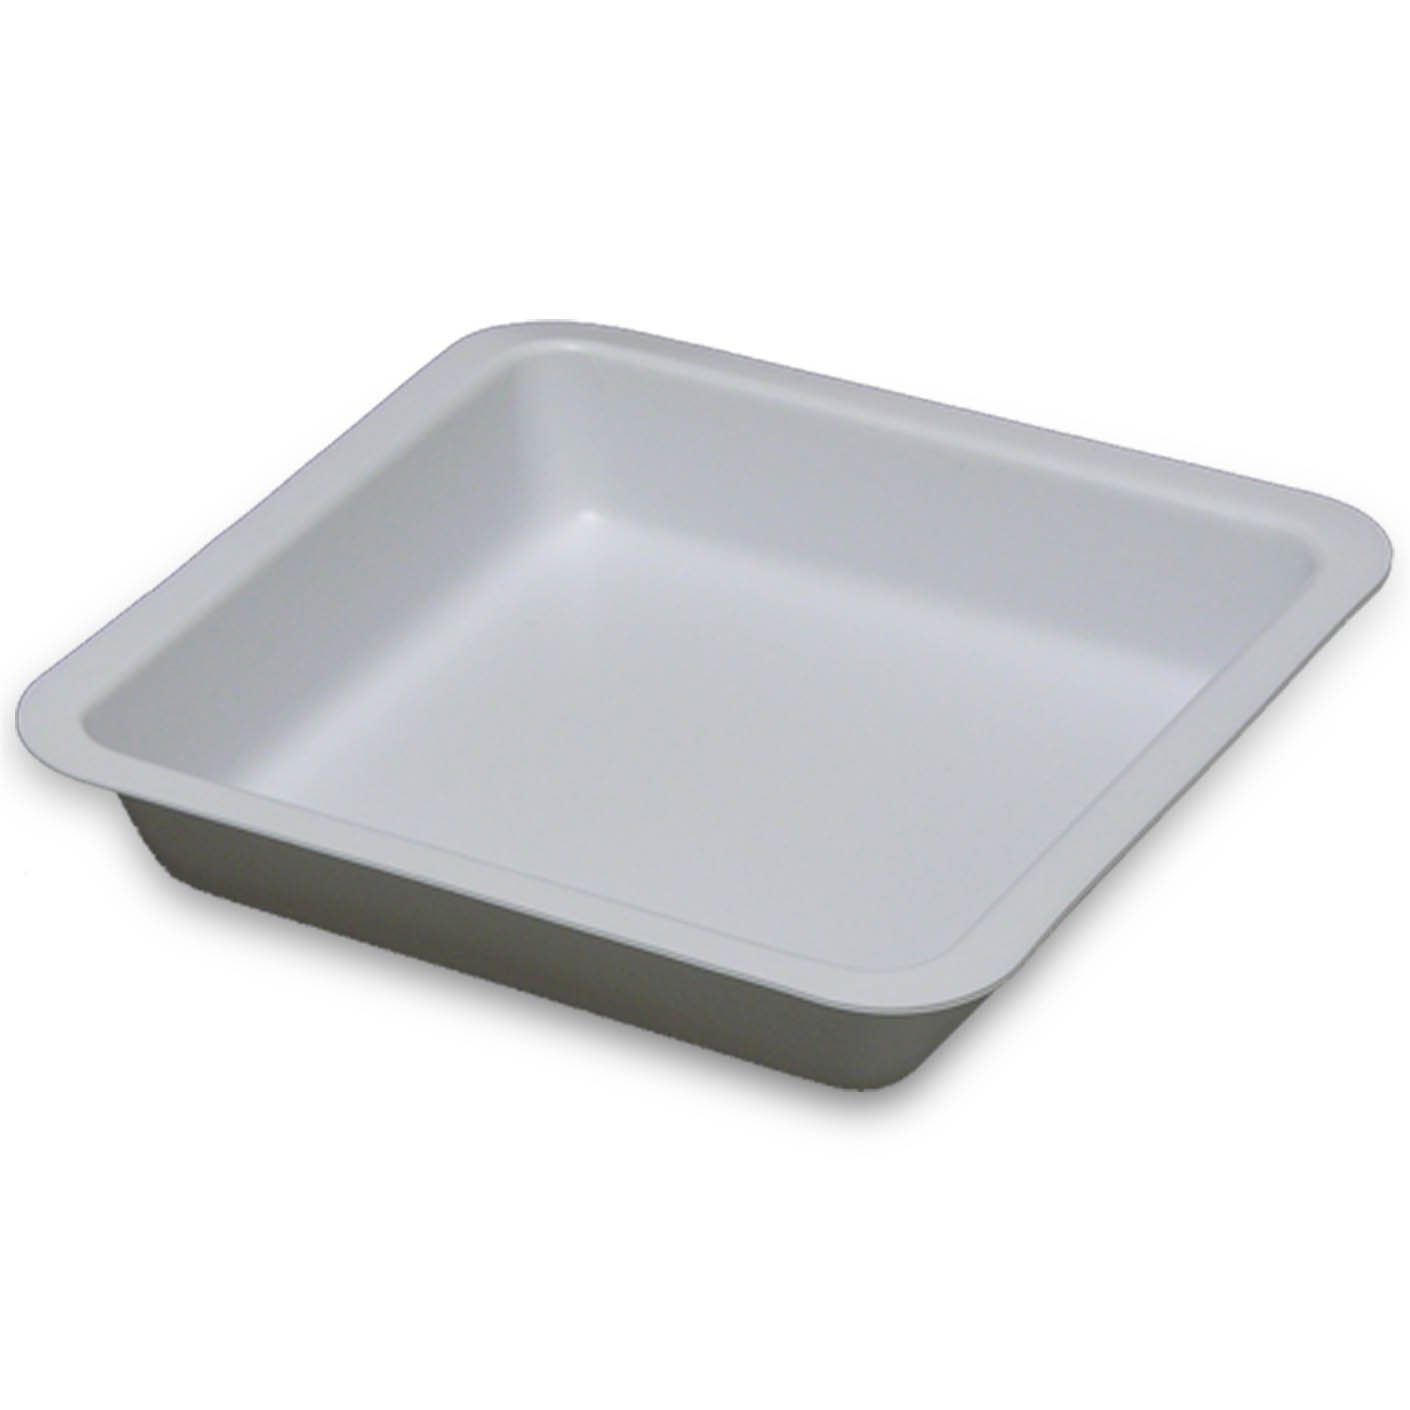 250mL White Antistatic Polystyrene Square Weigh Boat (4 Packs/Case - 500/Pack)